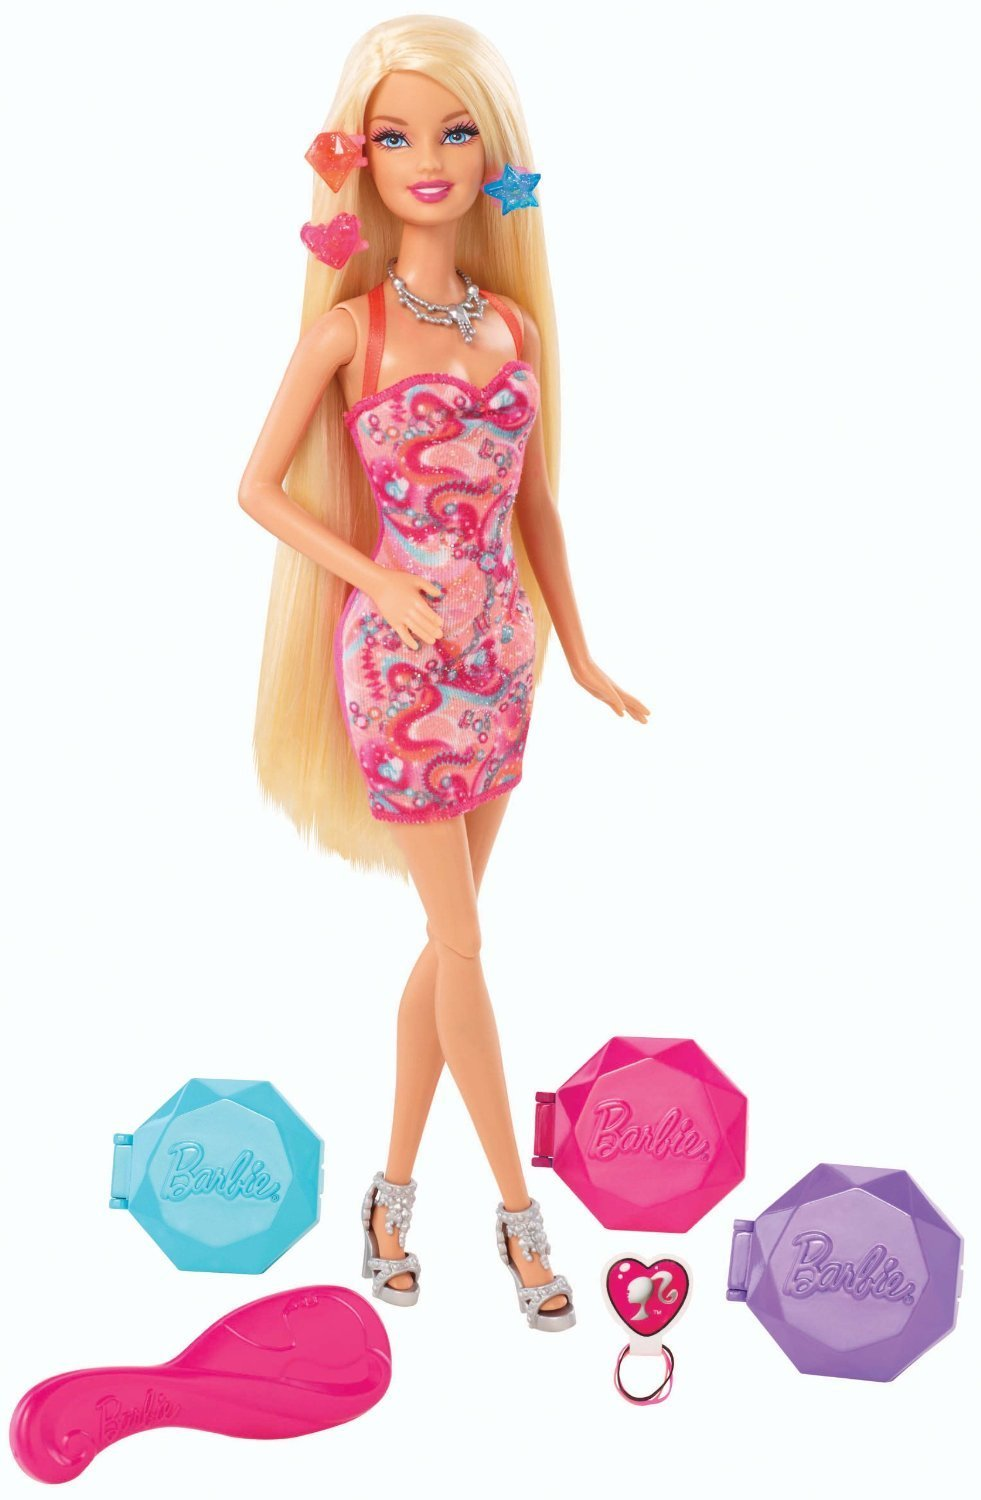 New Barbie Color Chalk Hair Salon Doll Only 8 09 Reg 21 99 Ideas With Pictures Original 1024 x 768